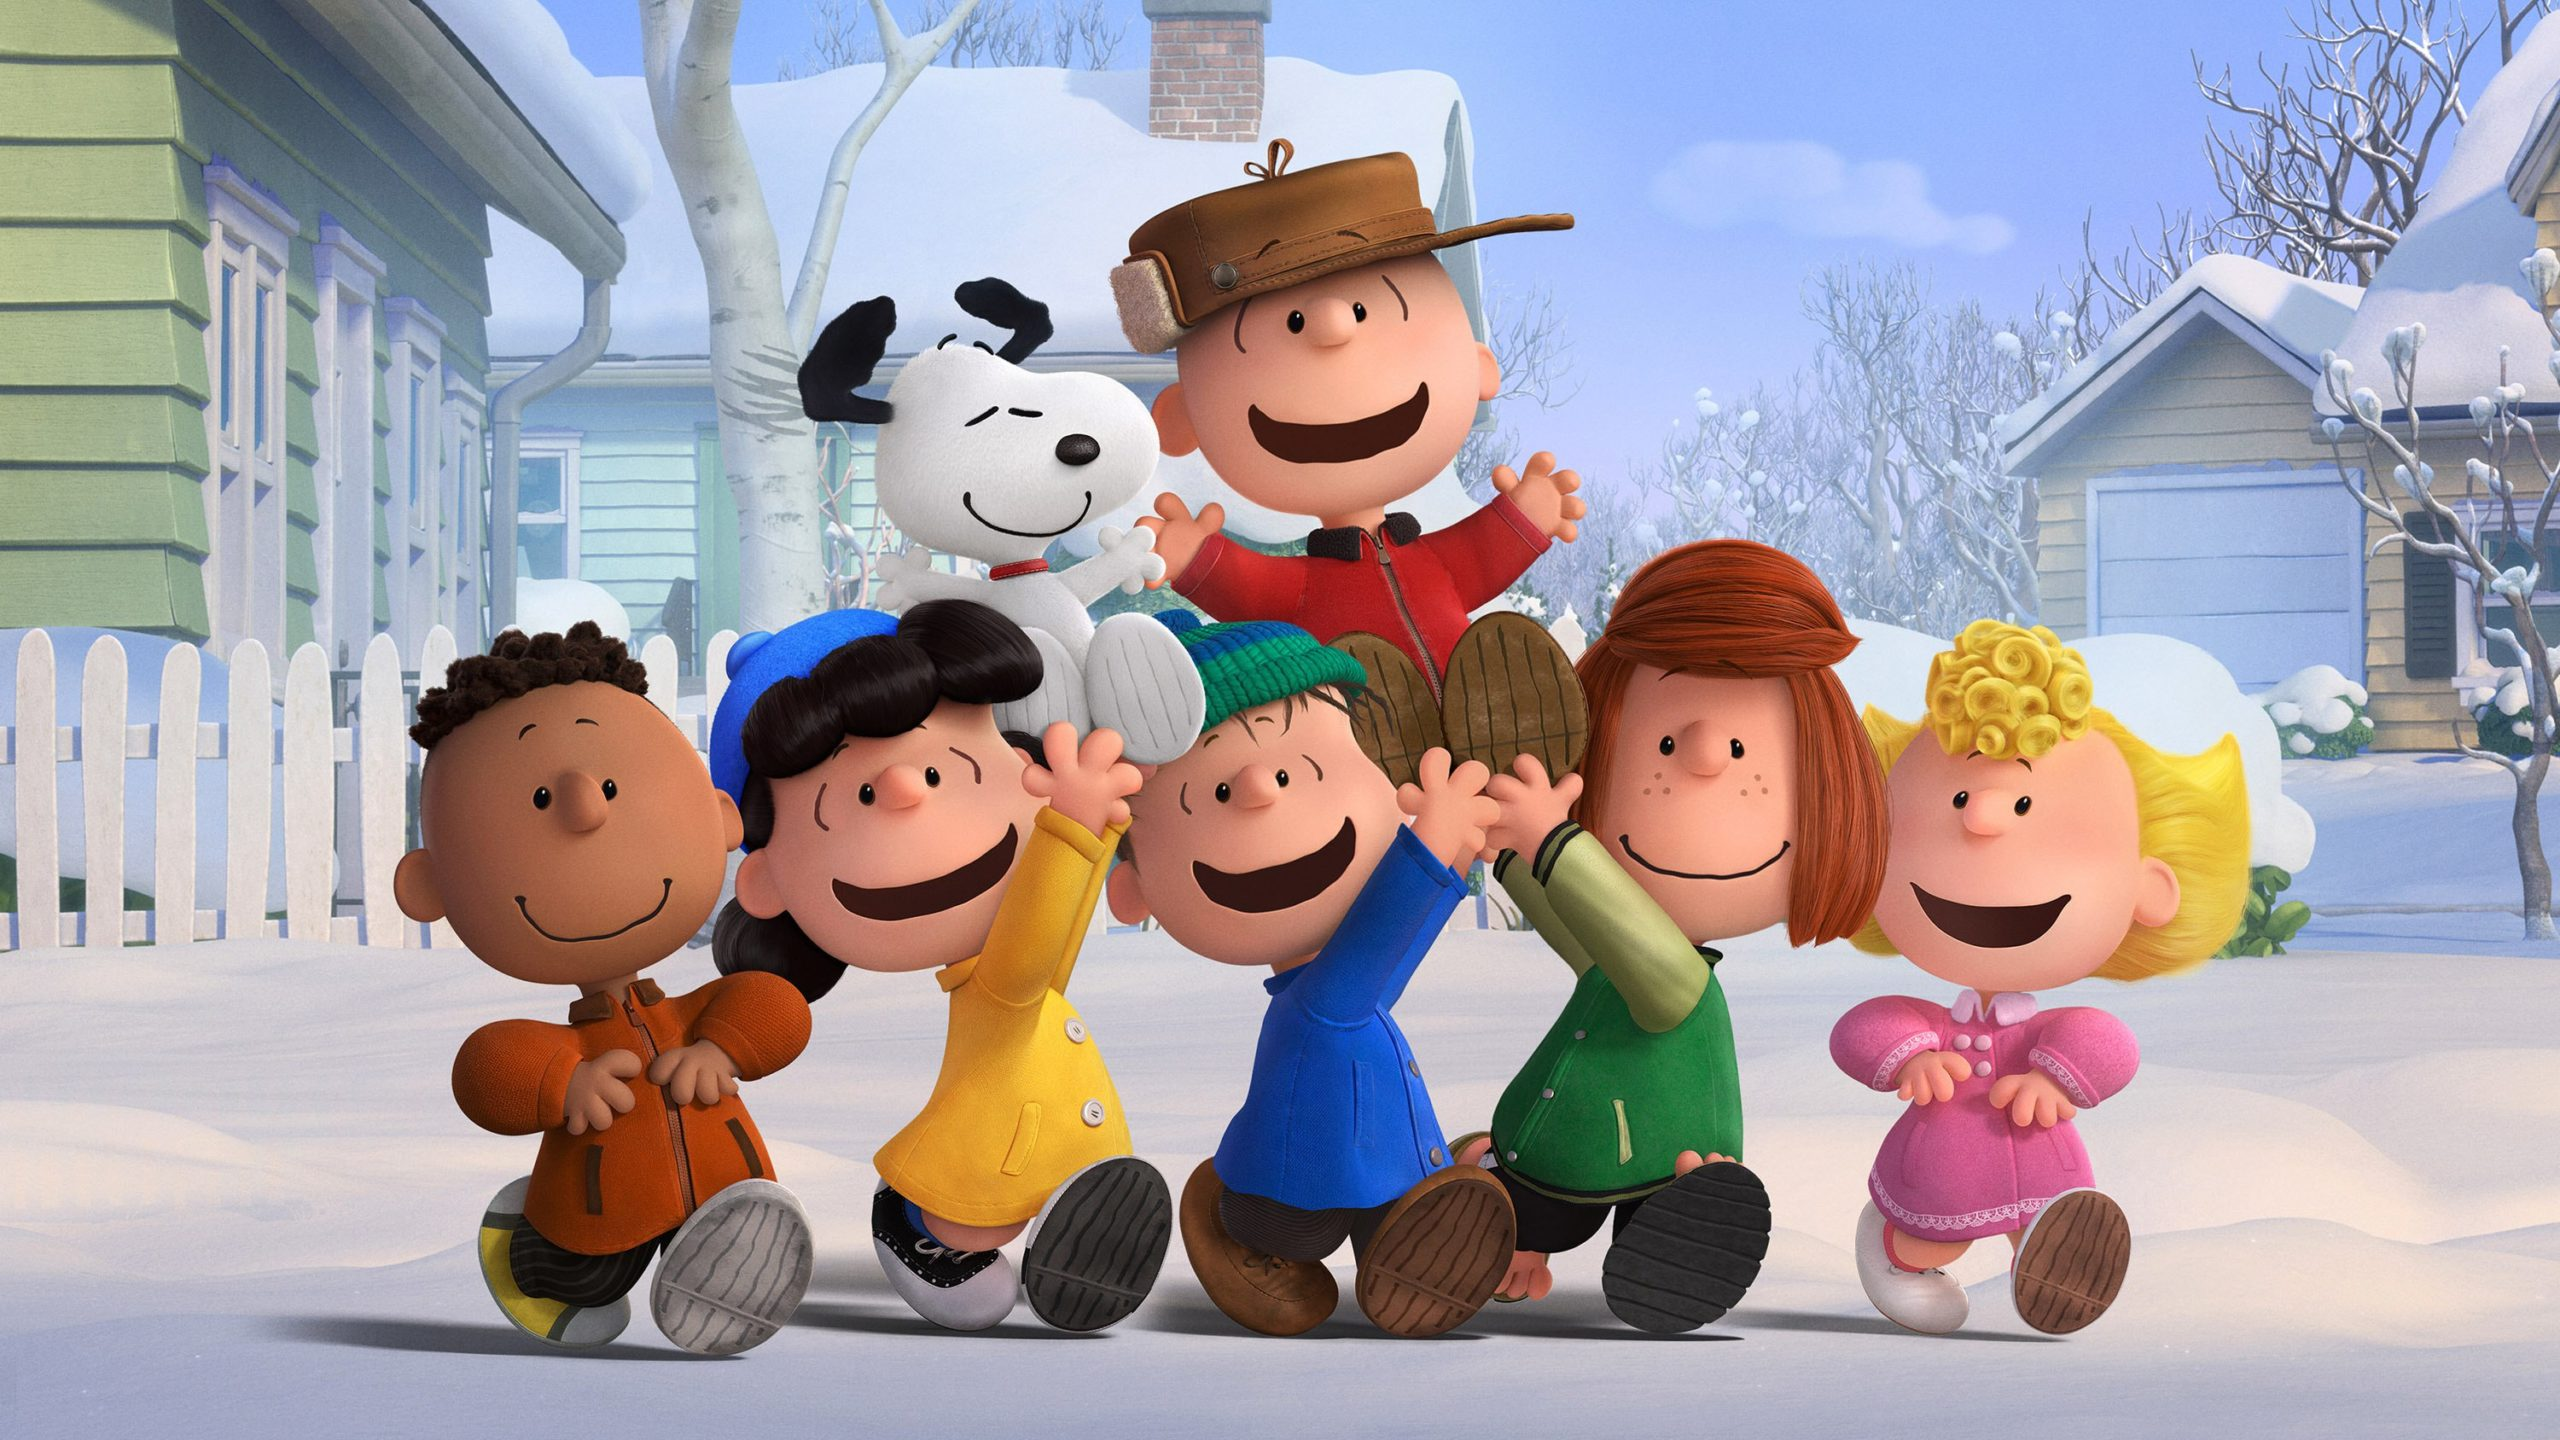 784884 byte size of The Peanuts Animated Movie.jpg